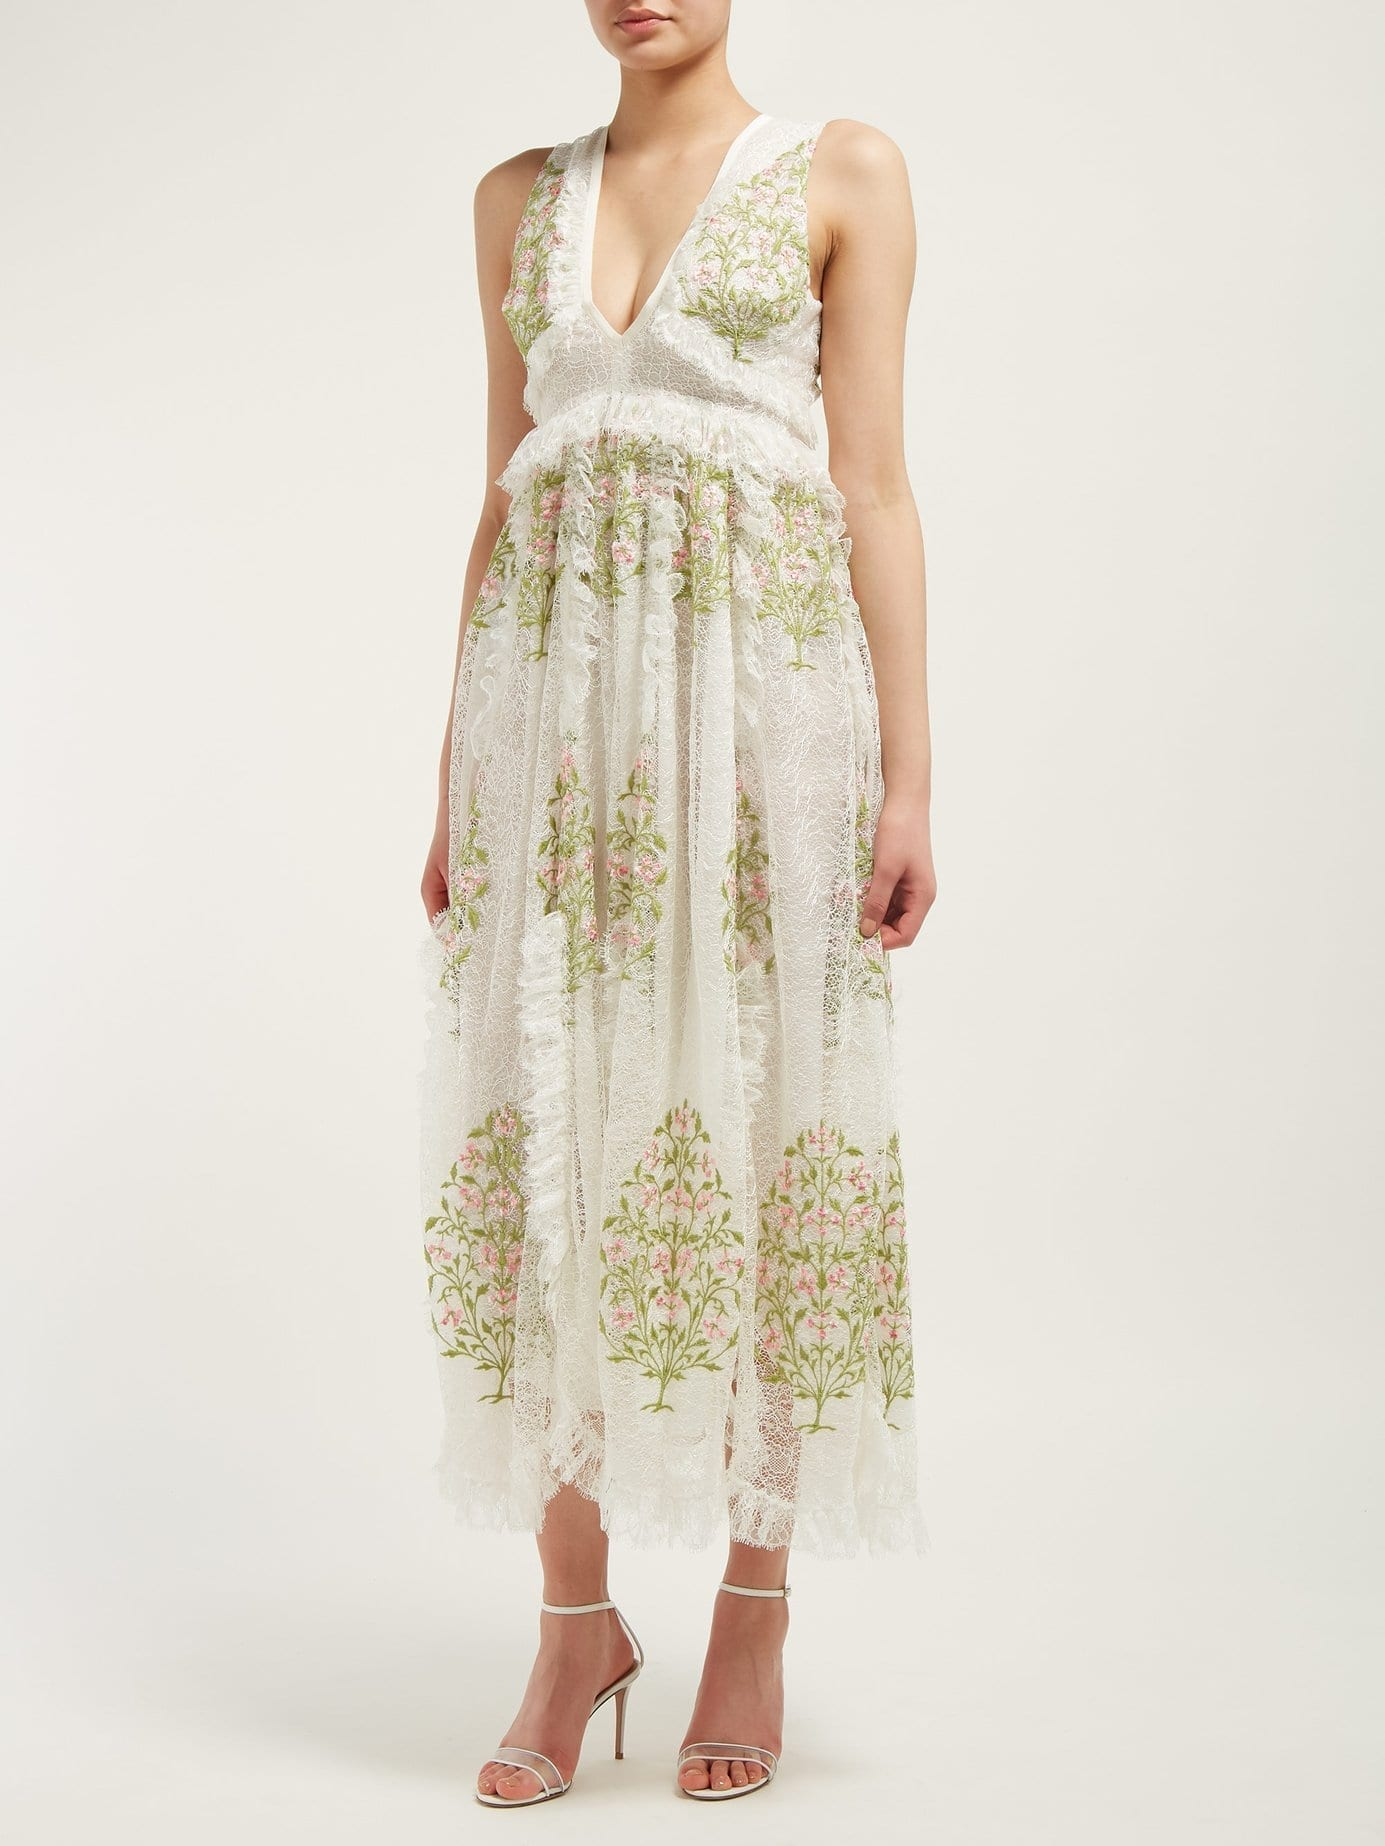 GIAMBATTISTA VALLI Floral-embroidered Lace Ivory Gown